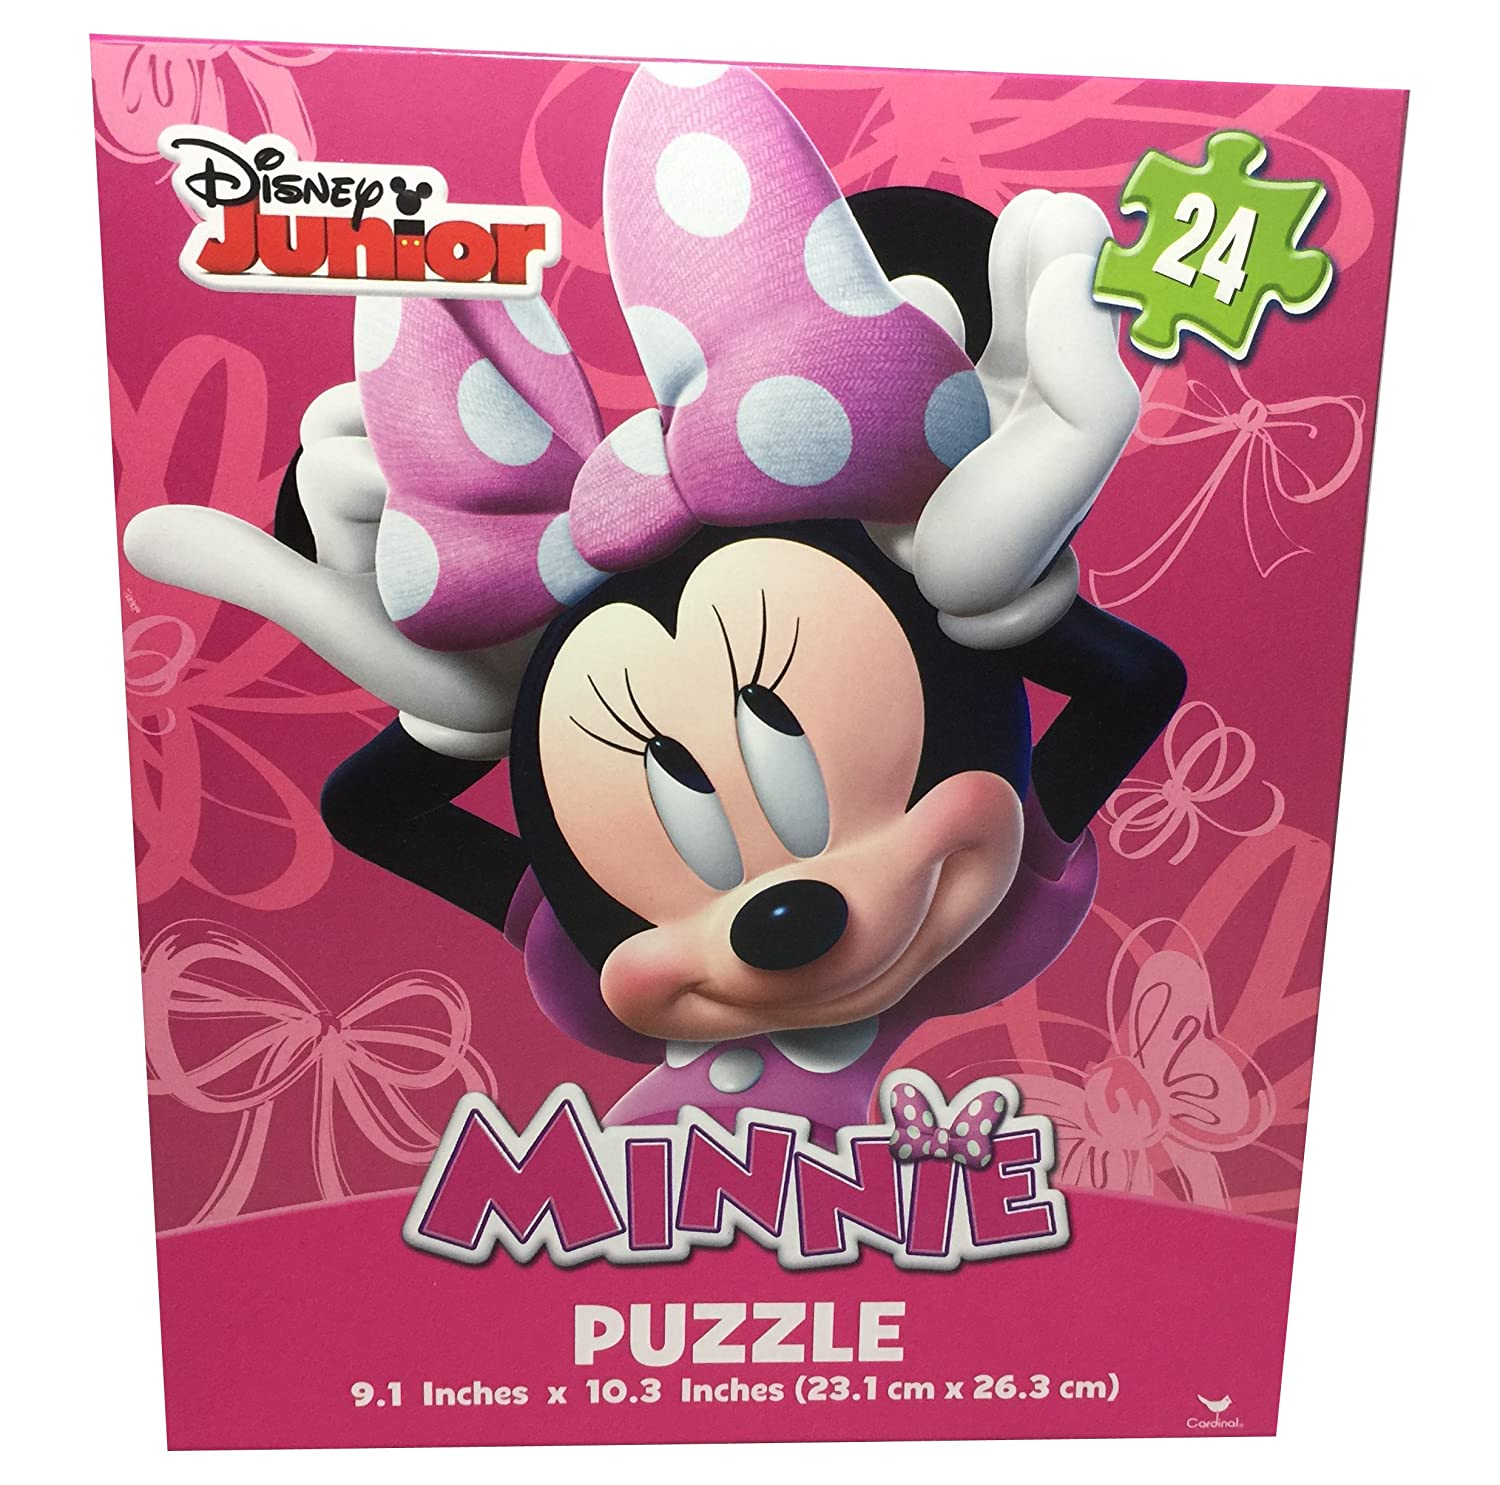 Set of 2 Disney Minnie Mouse and Daisy Duck in City Puzzle Seasons Merchandise